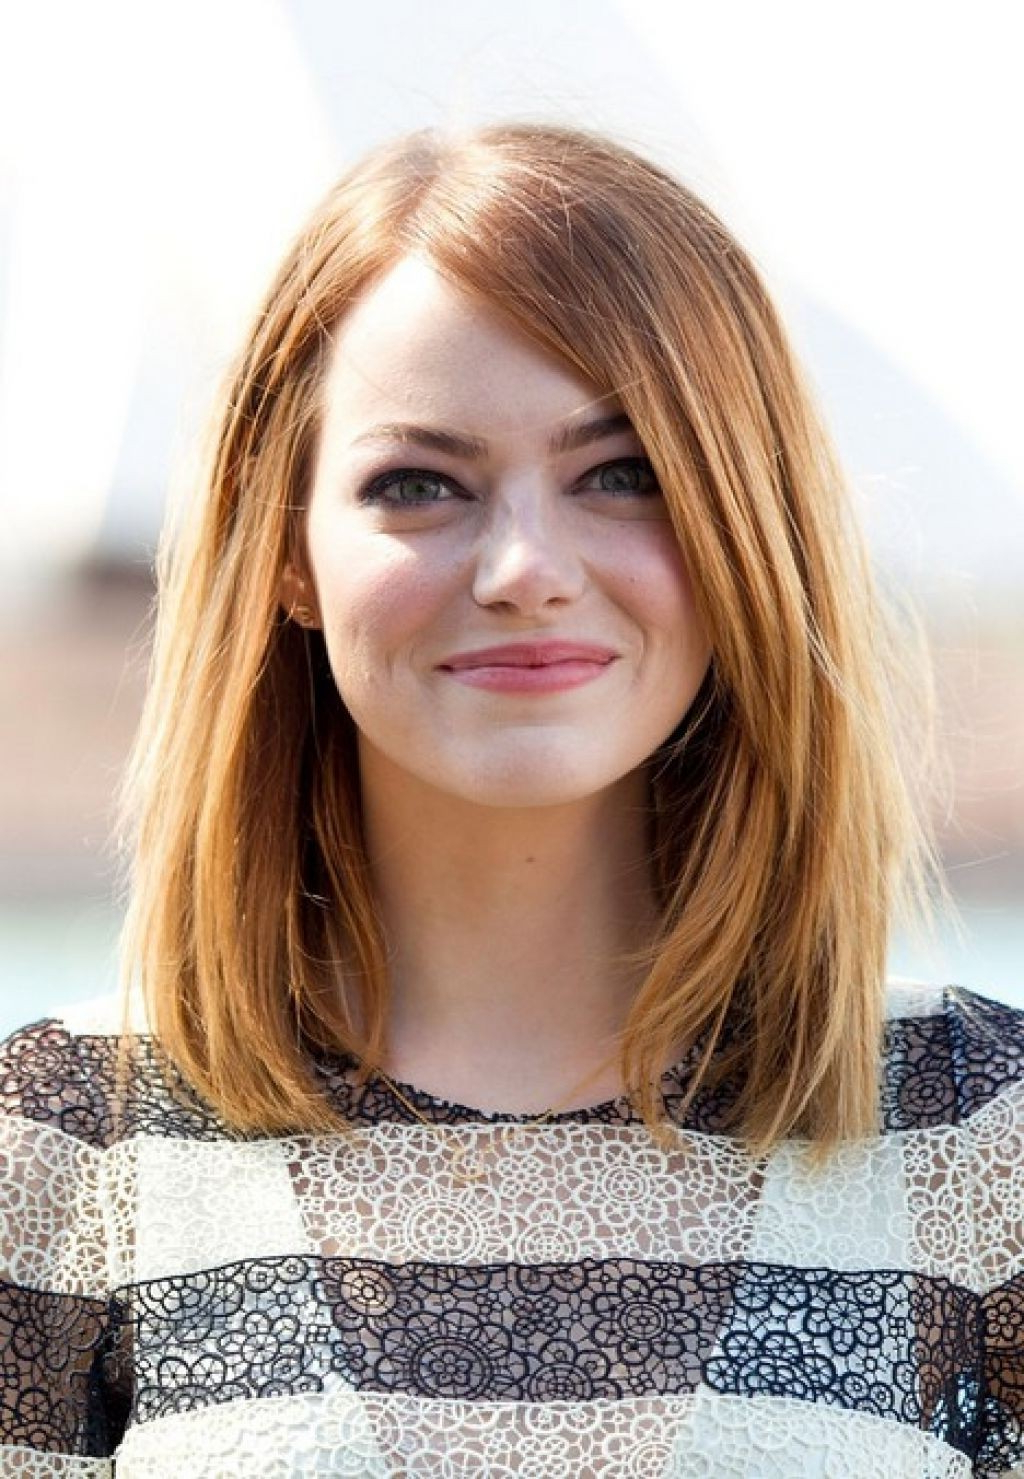 Hair Cuts : Haircuts For Round Faces Women Medium Length And Fine Intended For Well Known Medium Haircuts For Circle Faces (View 10 of 20)